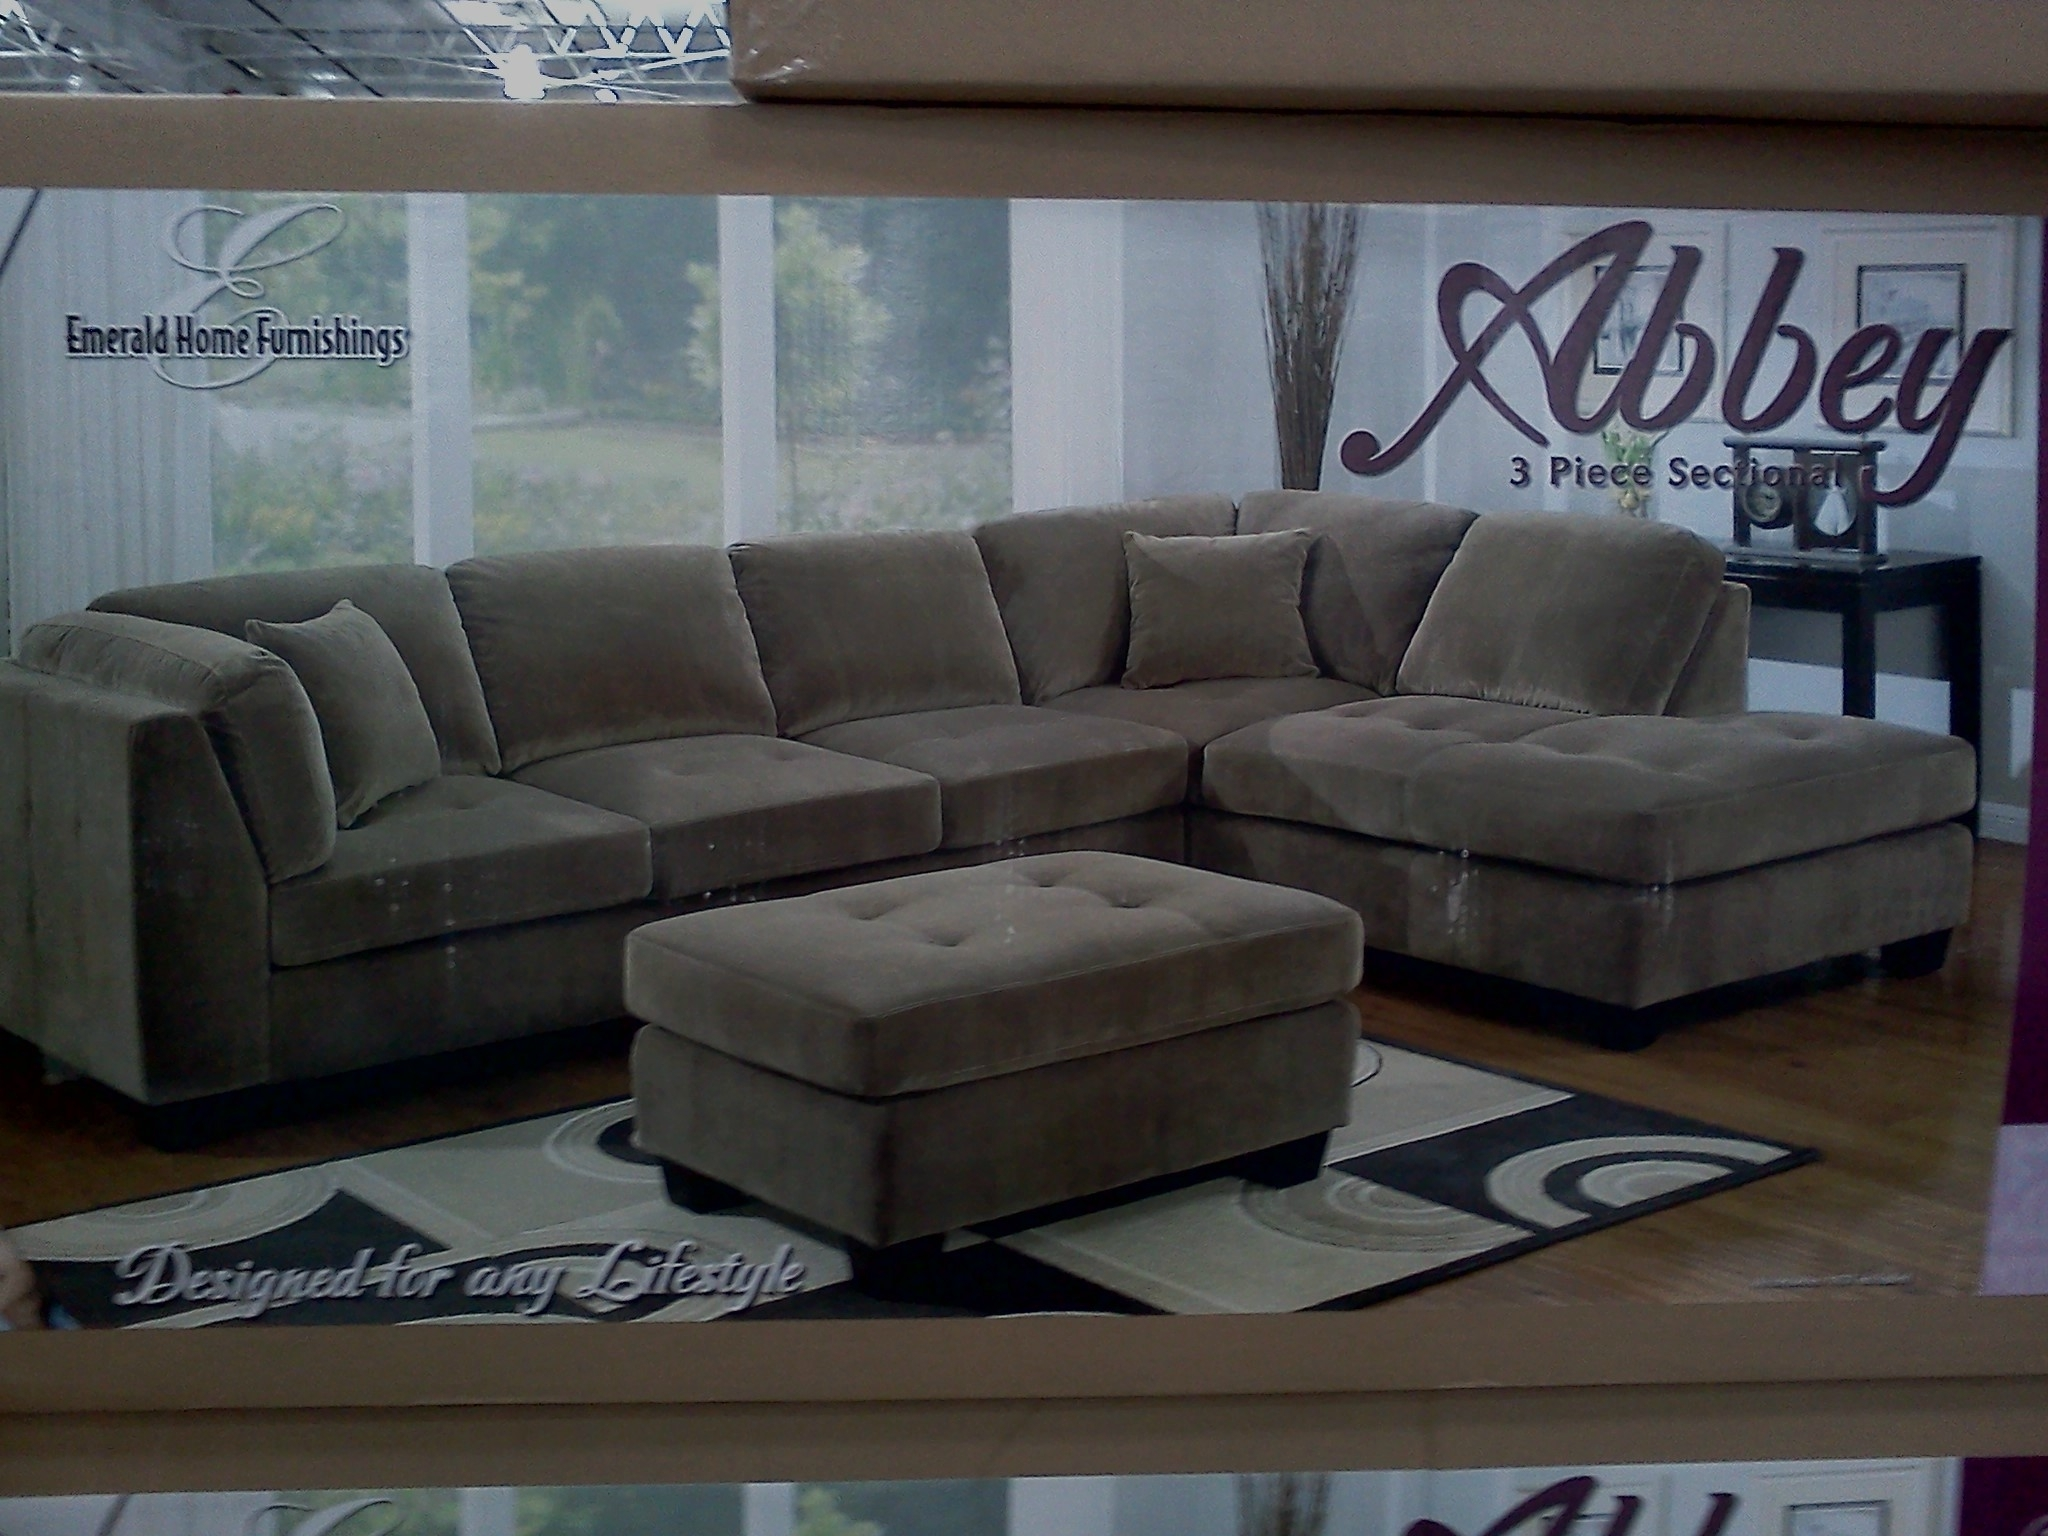 Amusing Sectional Sofas At Costco 11 About Remodel Sectional Sofas With Raleigh Nc Sectional Sofas (View 8 of 10)